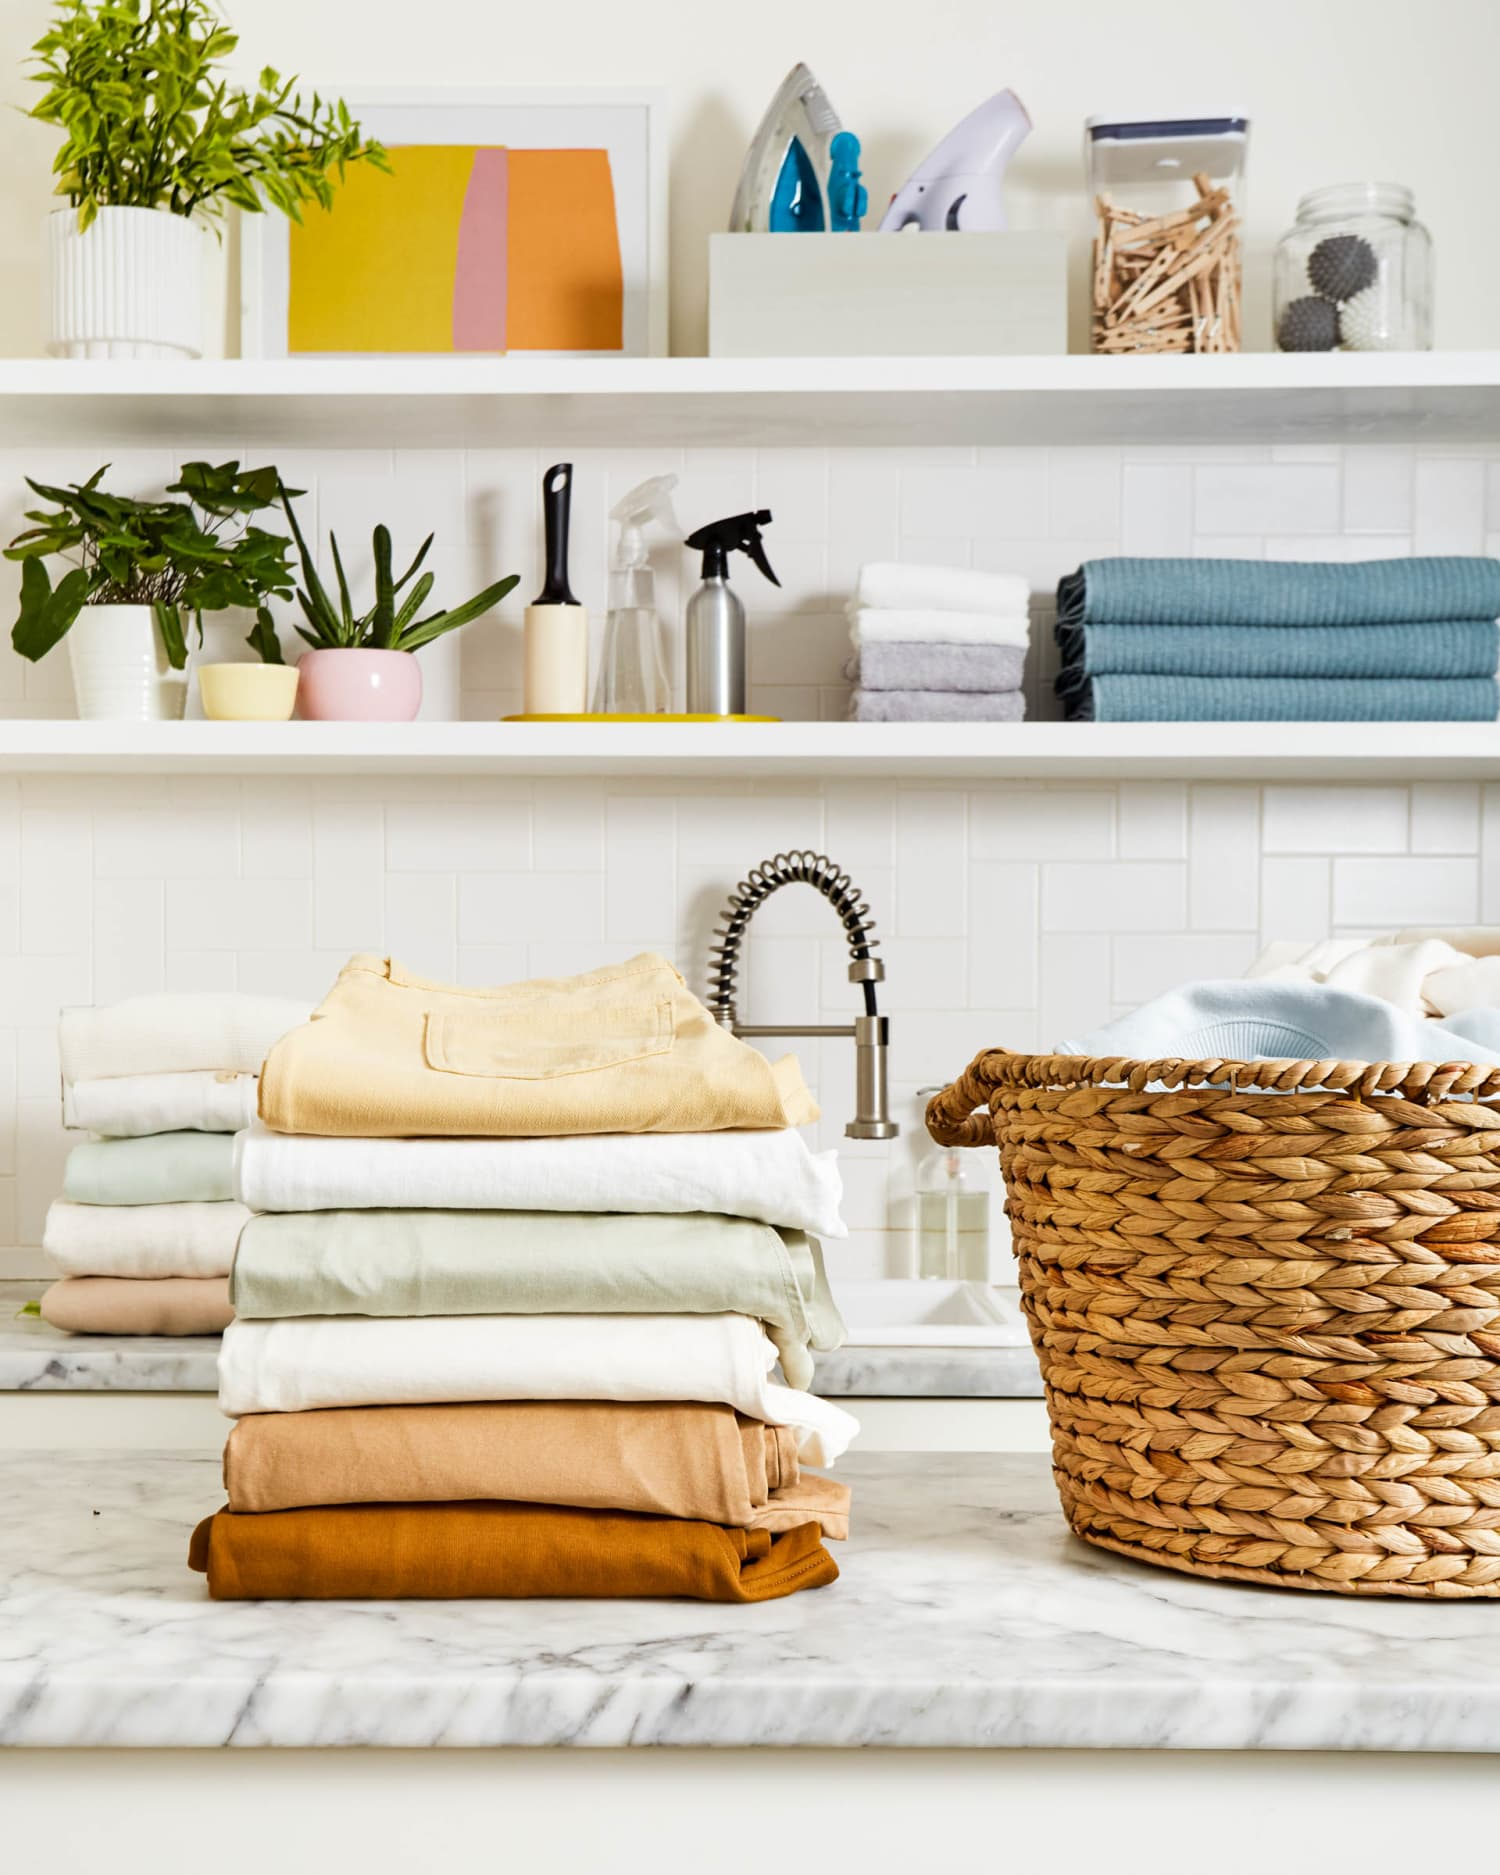 The 5 Mistakes You're Probably Making with Your Laundry — And How to Fix Them